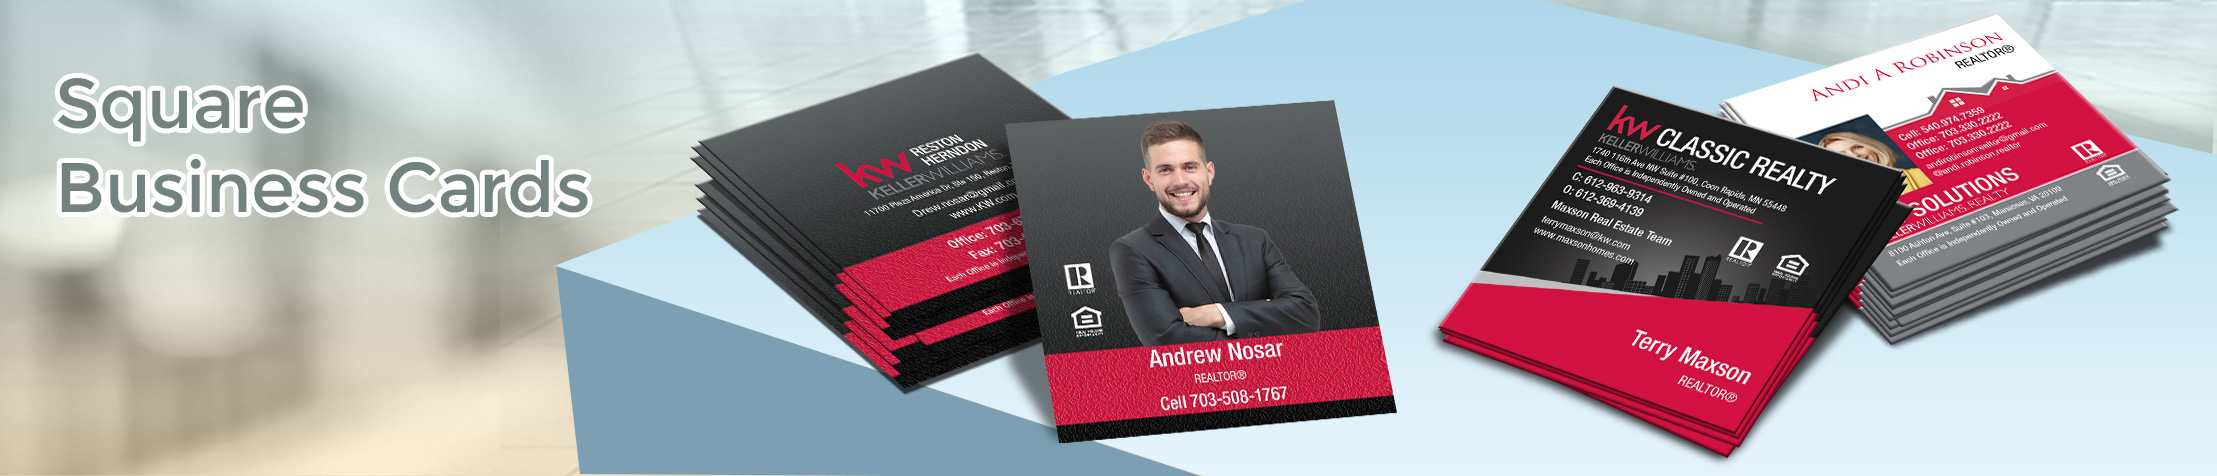 Keller Williams Real Estate Square Business Cards - KW Approved Vendor - Modern, Unique Business Cards for Realtors with a Glossy or Matte Finish | BestPrintBuy.com